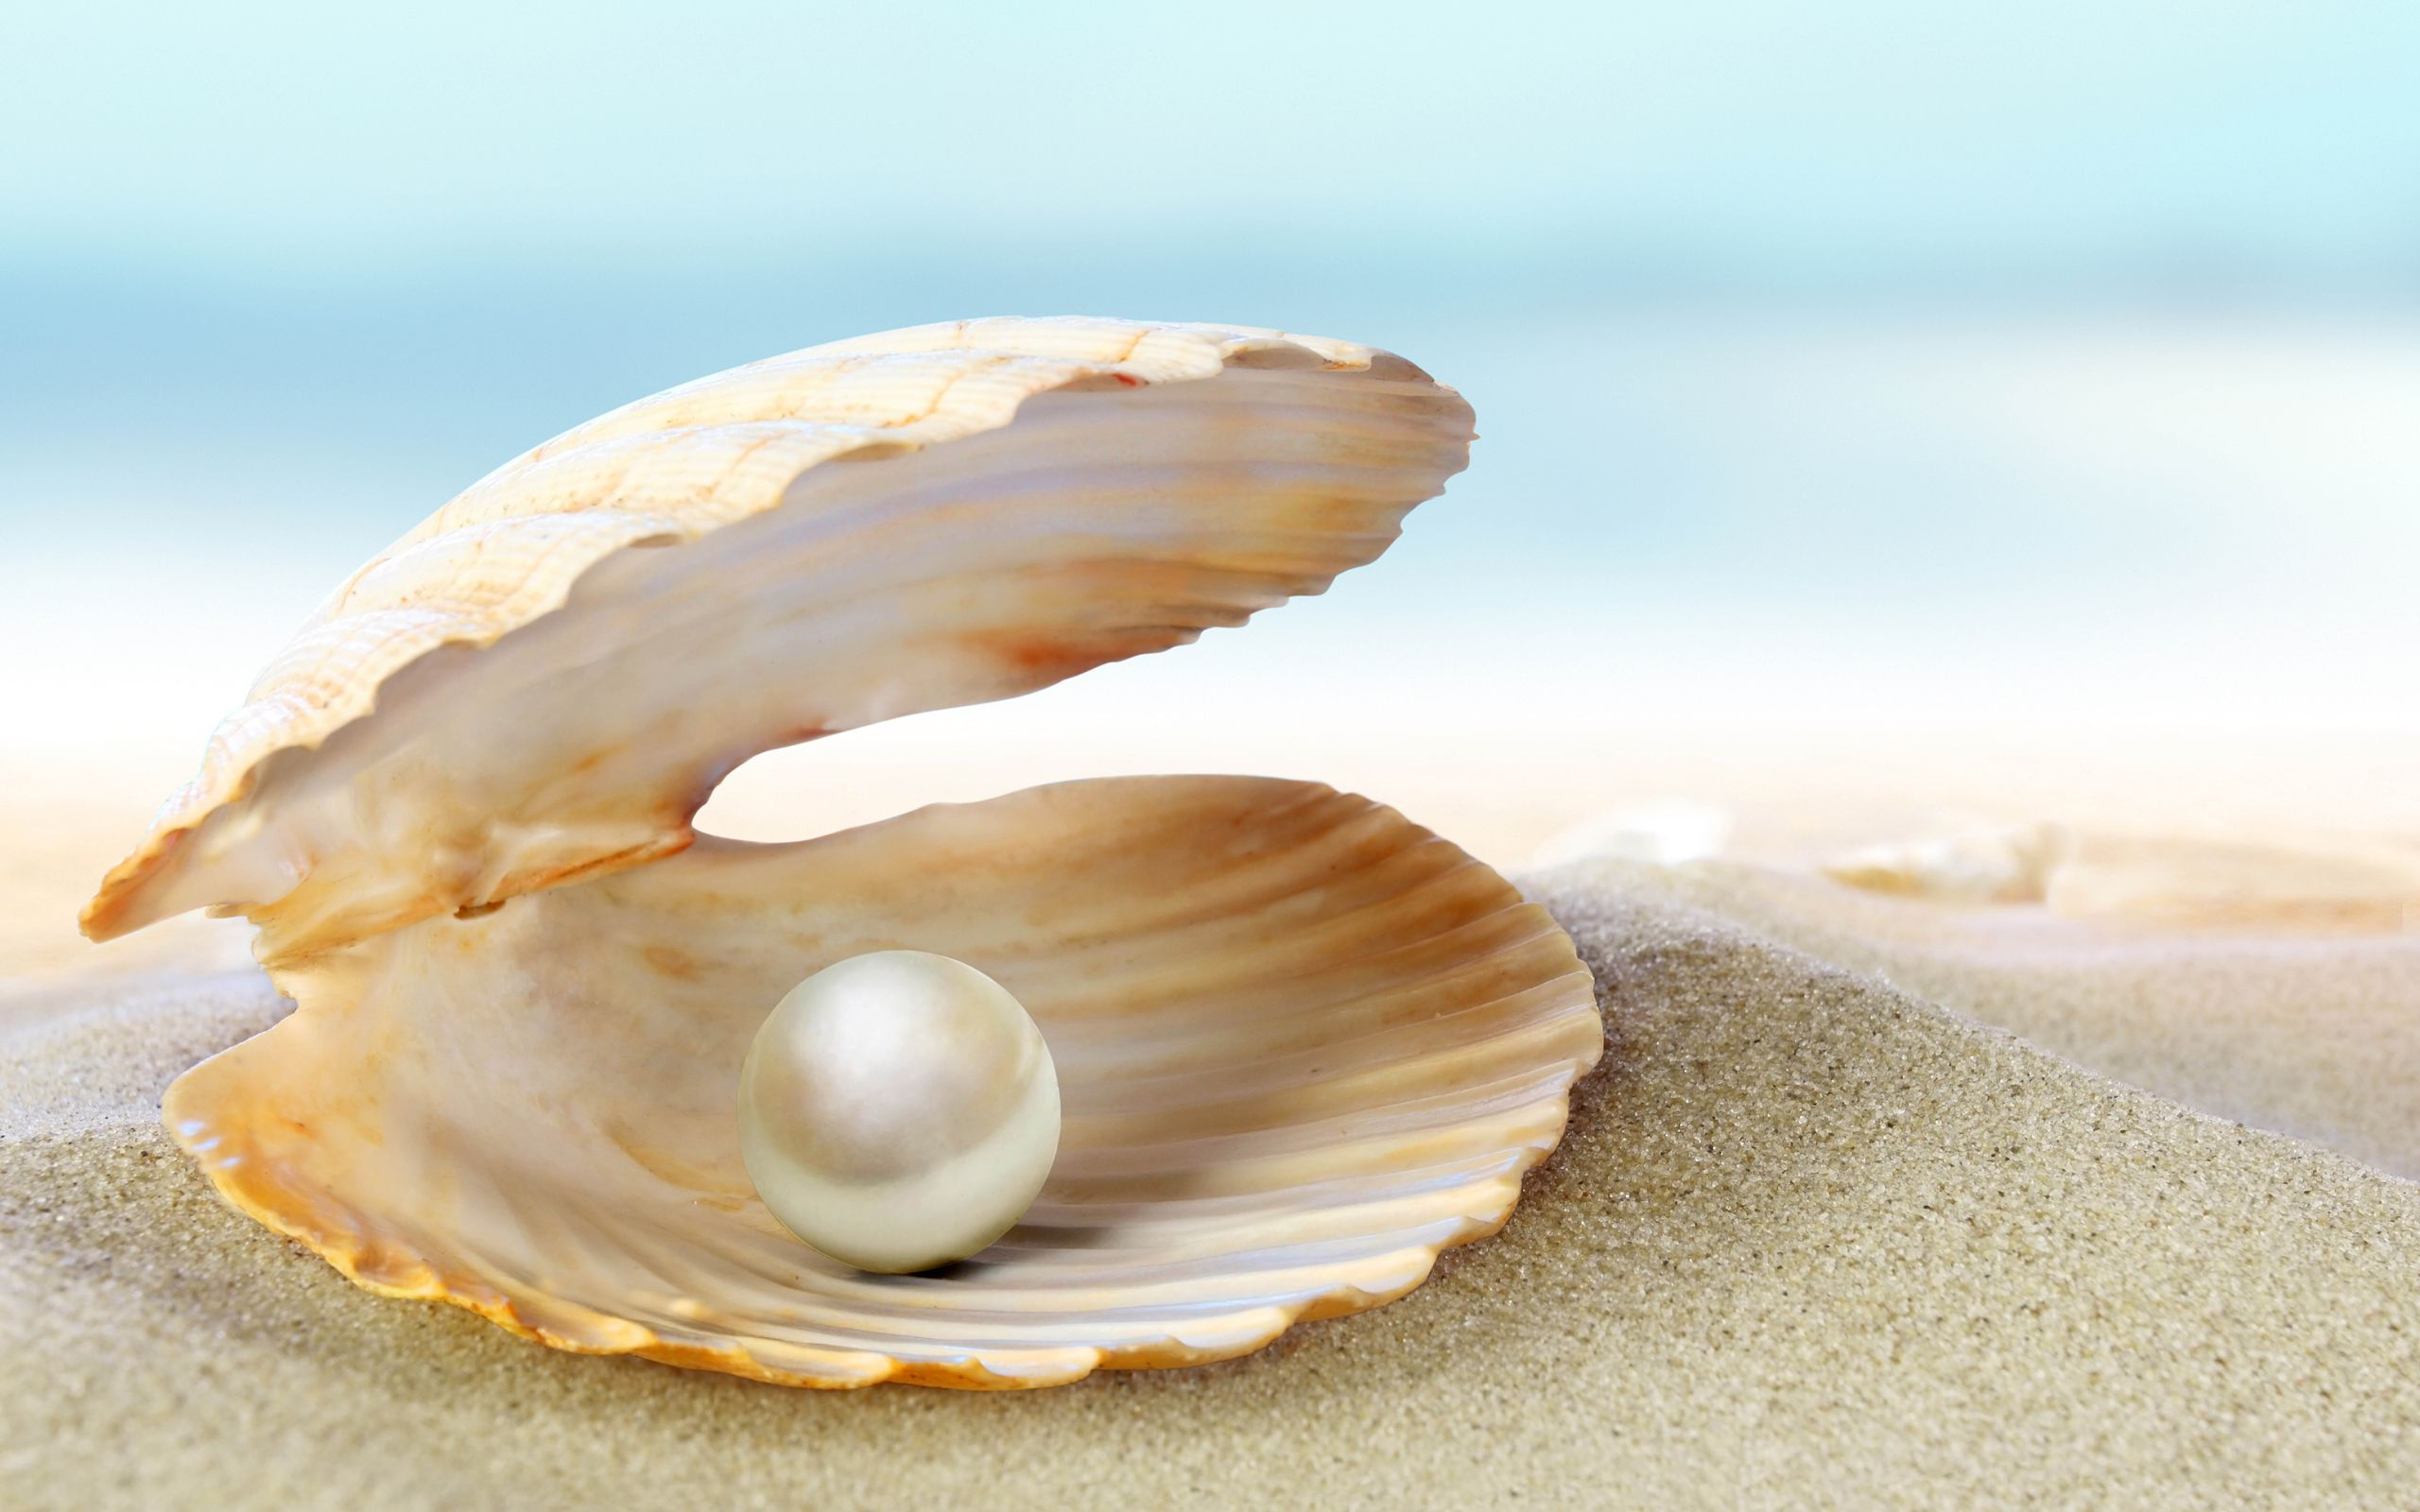 Pin By Maria Sobolicova On Animals Ocean Flash Cards Pearls Oysters Chinese Beauty Secrets